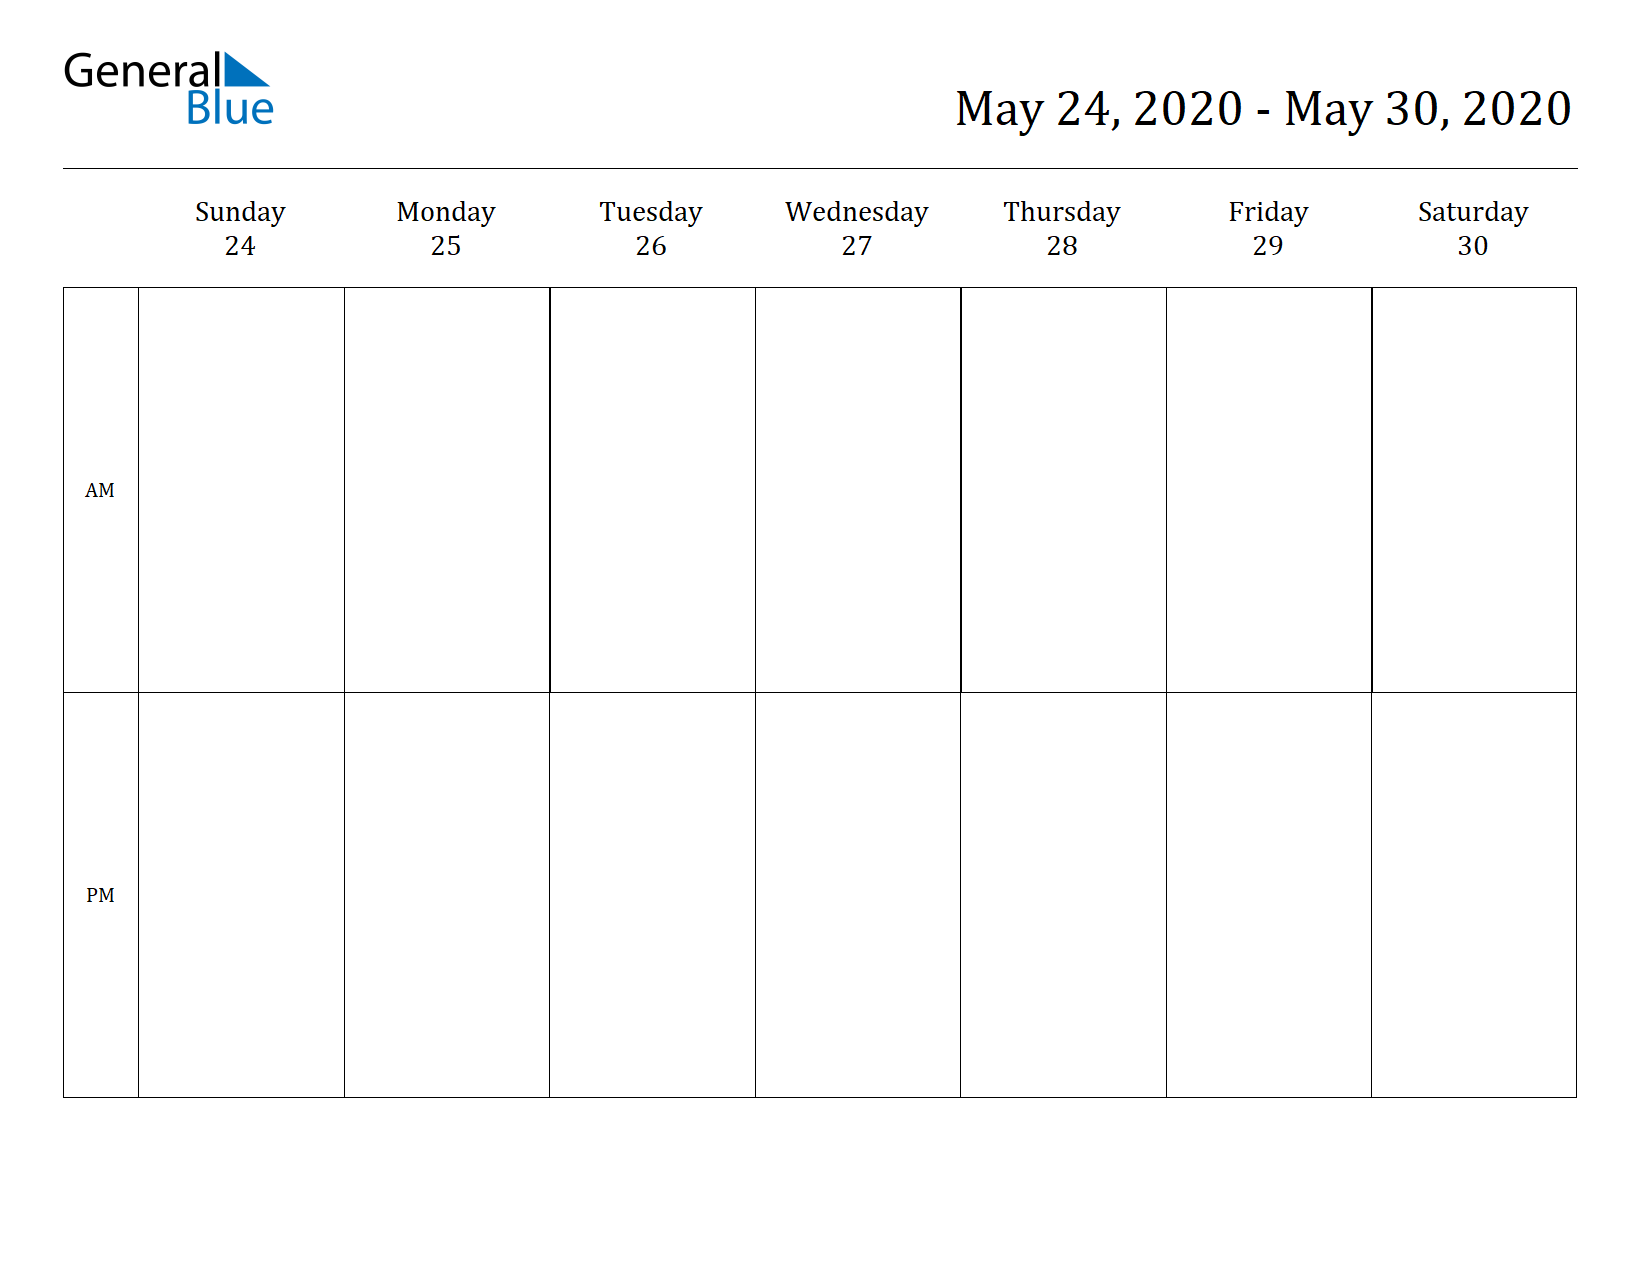 Weekly Calendar for May 24, 2020 to May 30, 2020